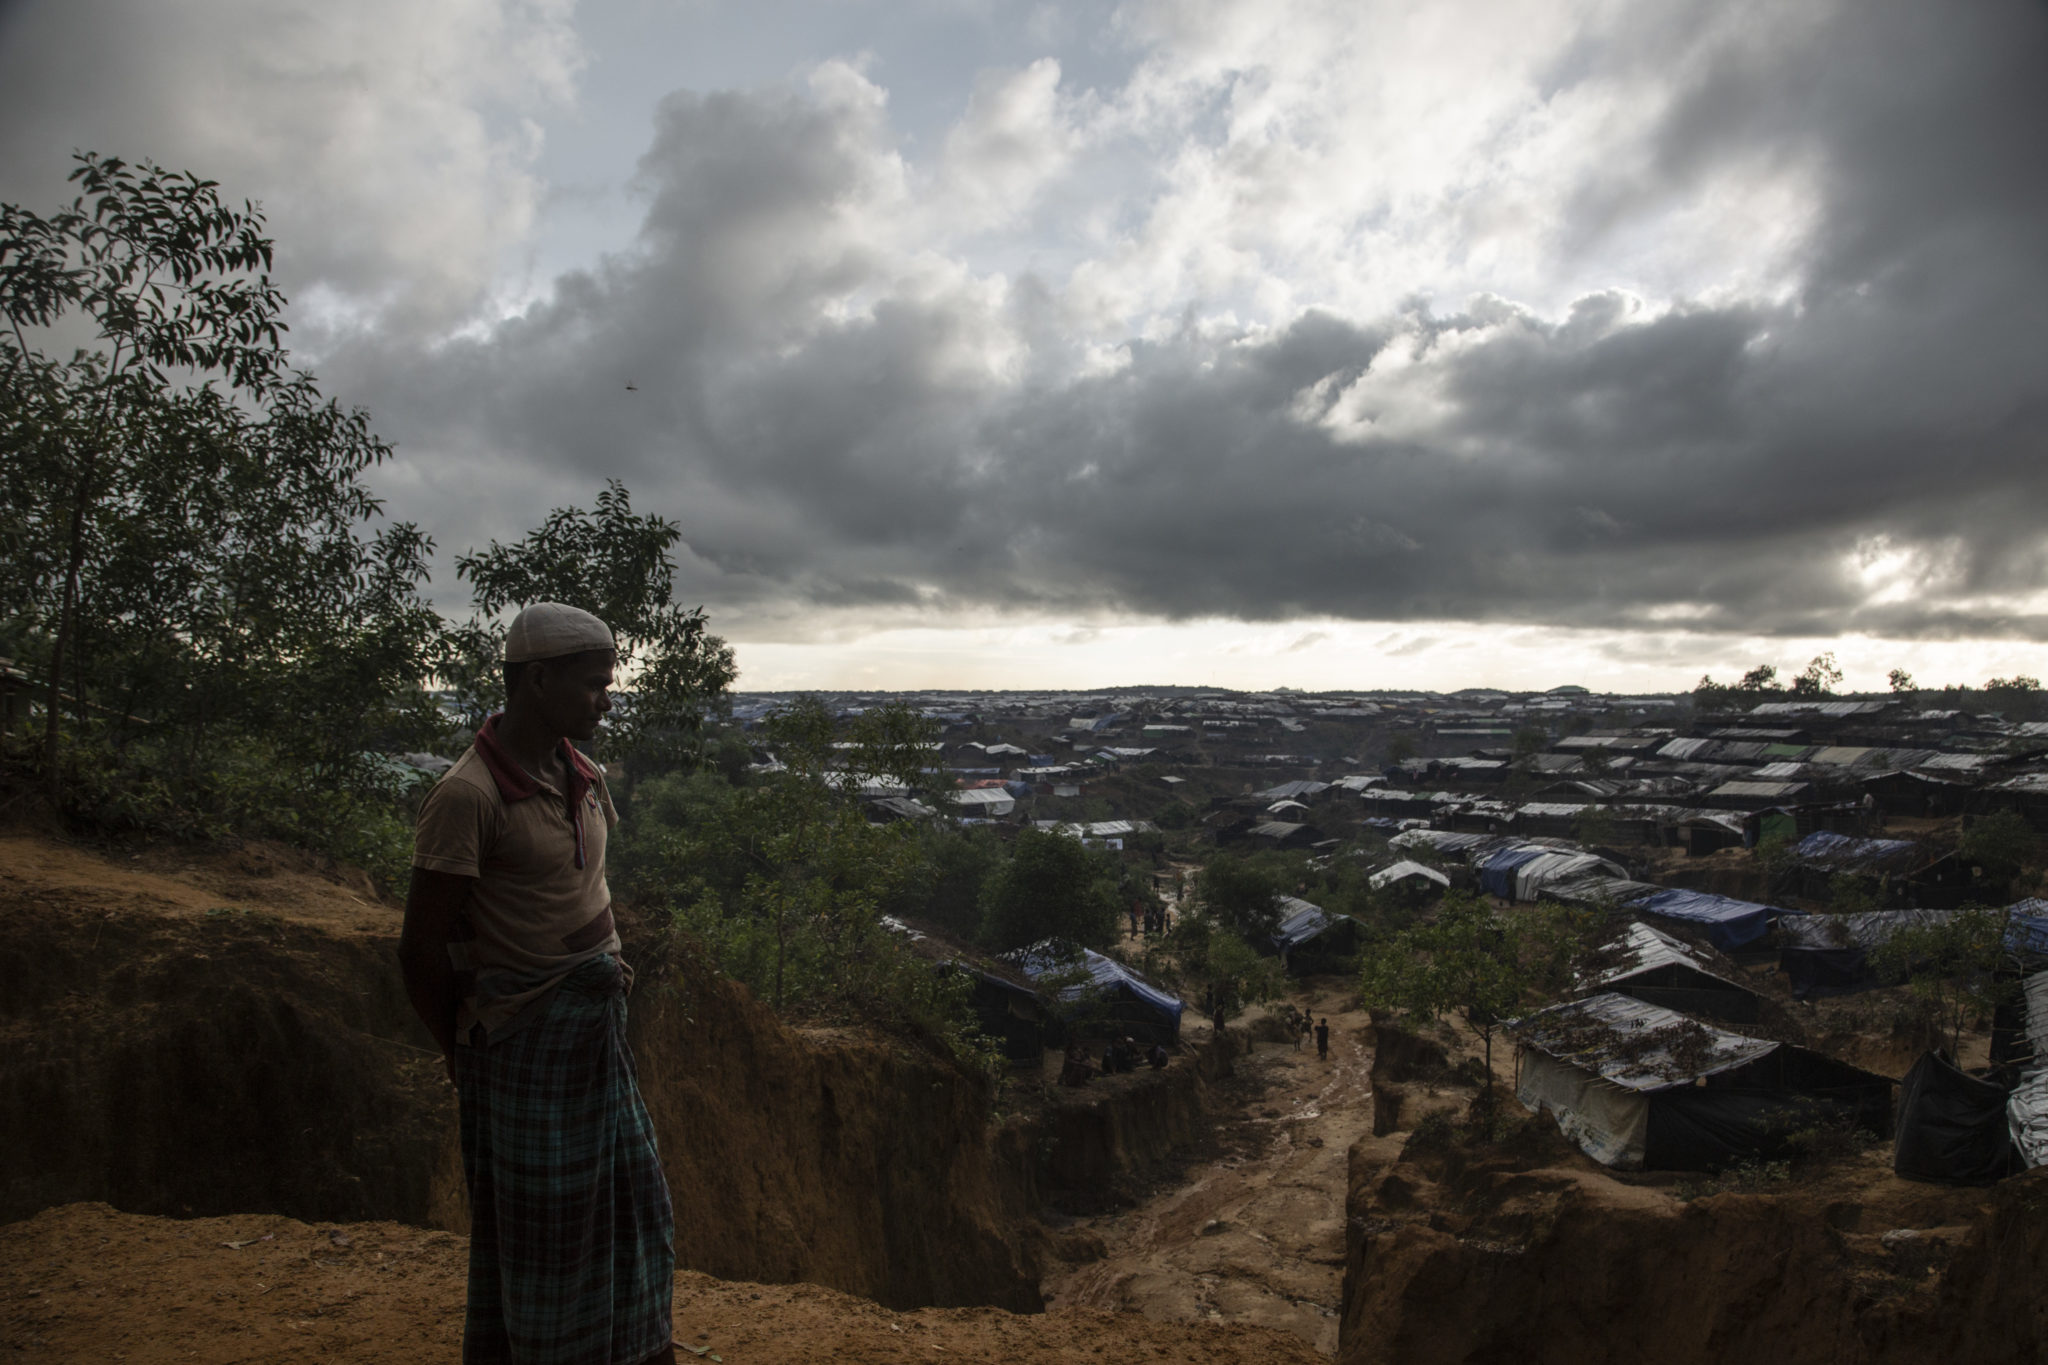 Myanmar: Two years since Rohingya exodus, impunity reigns supreme for military